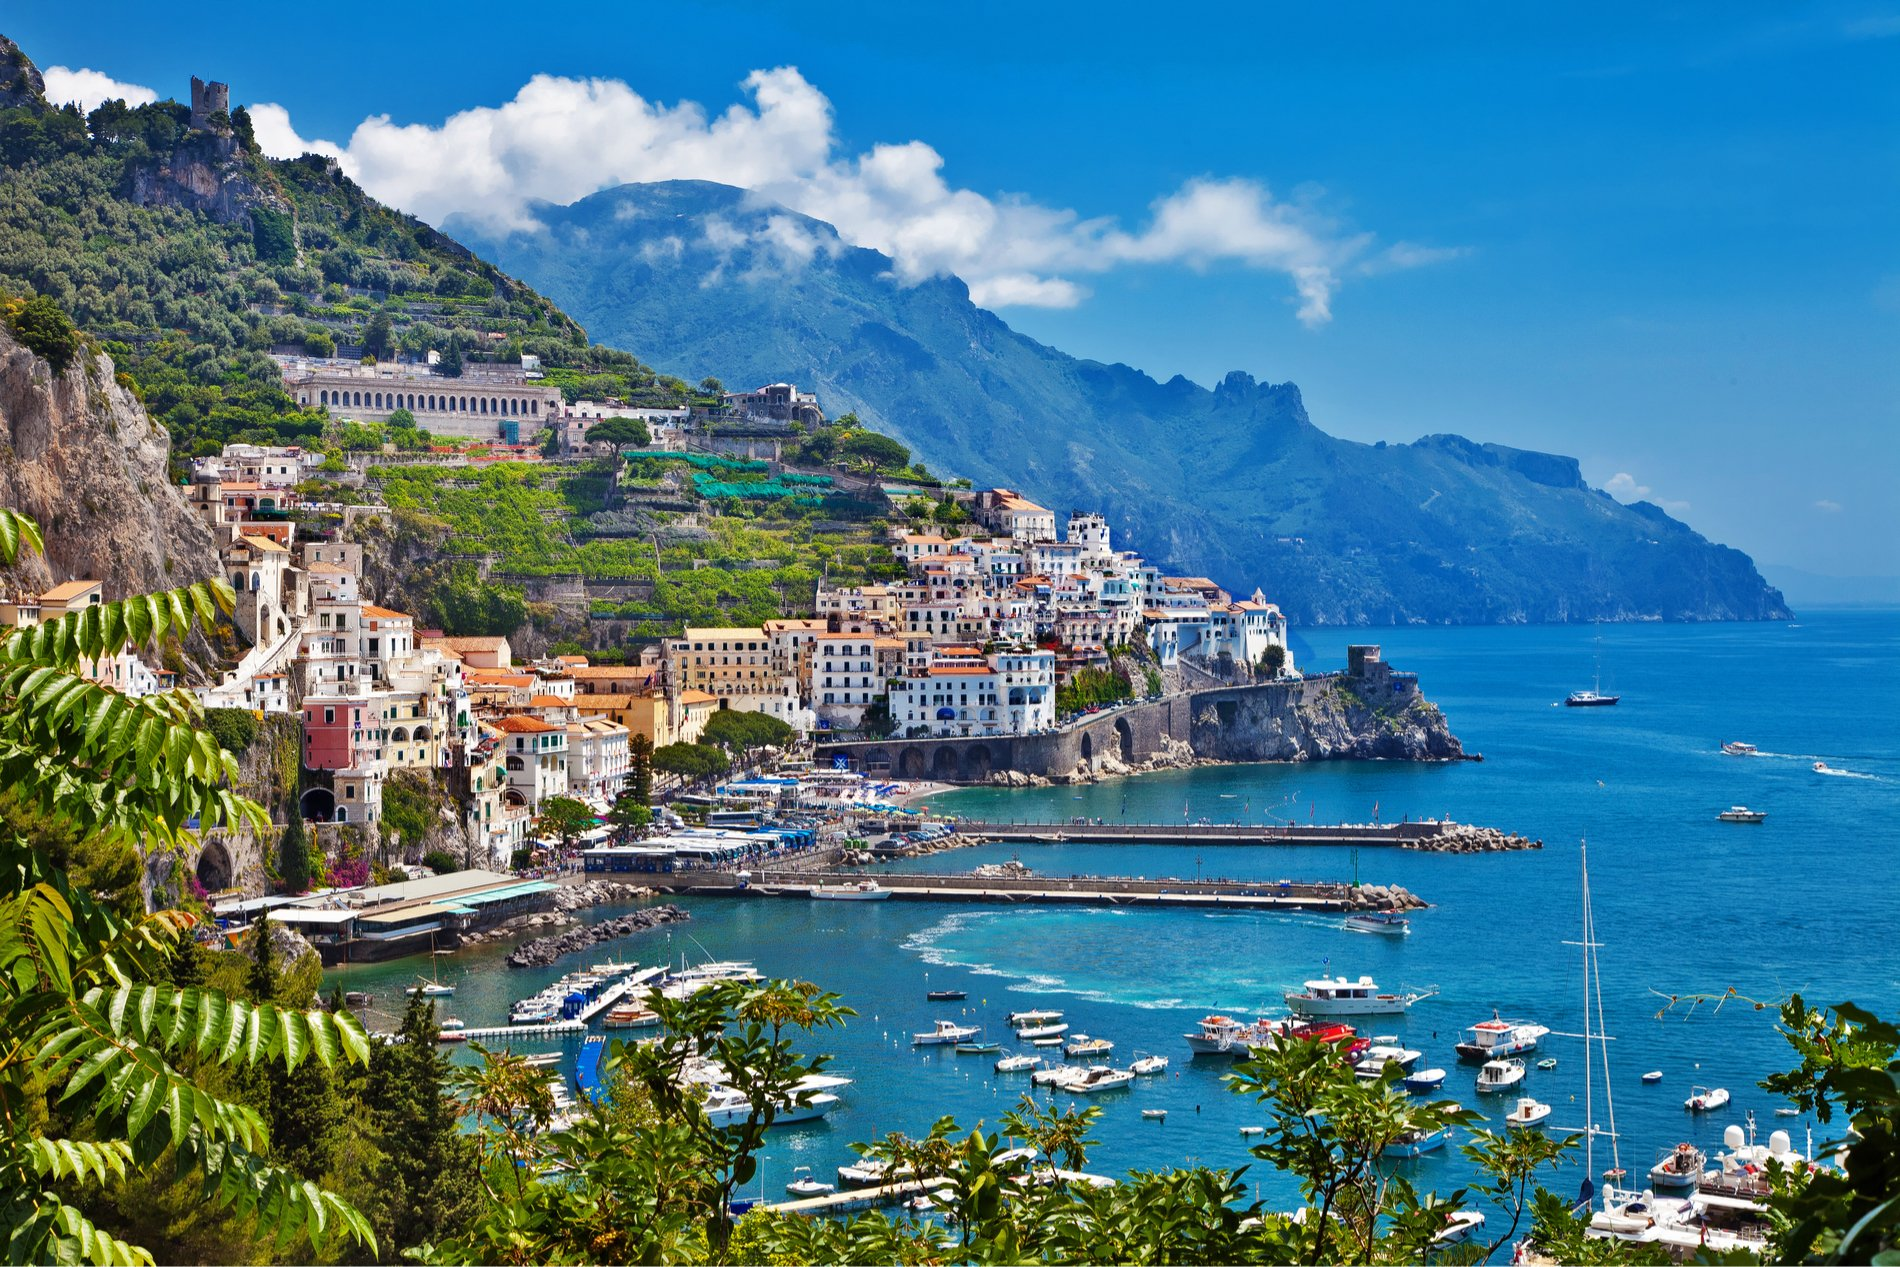 Amalfi Coast and Mountains